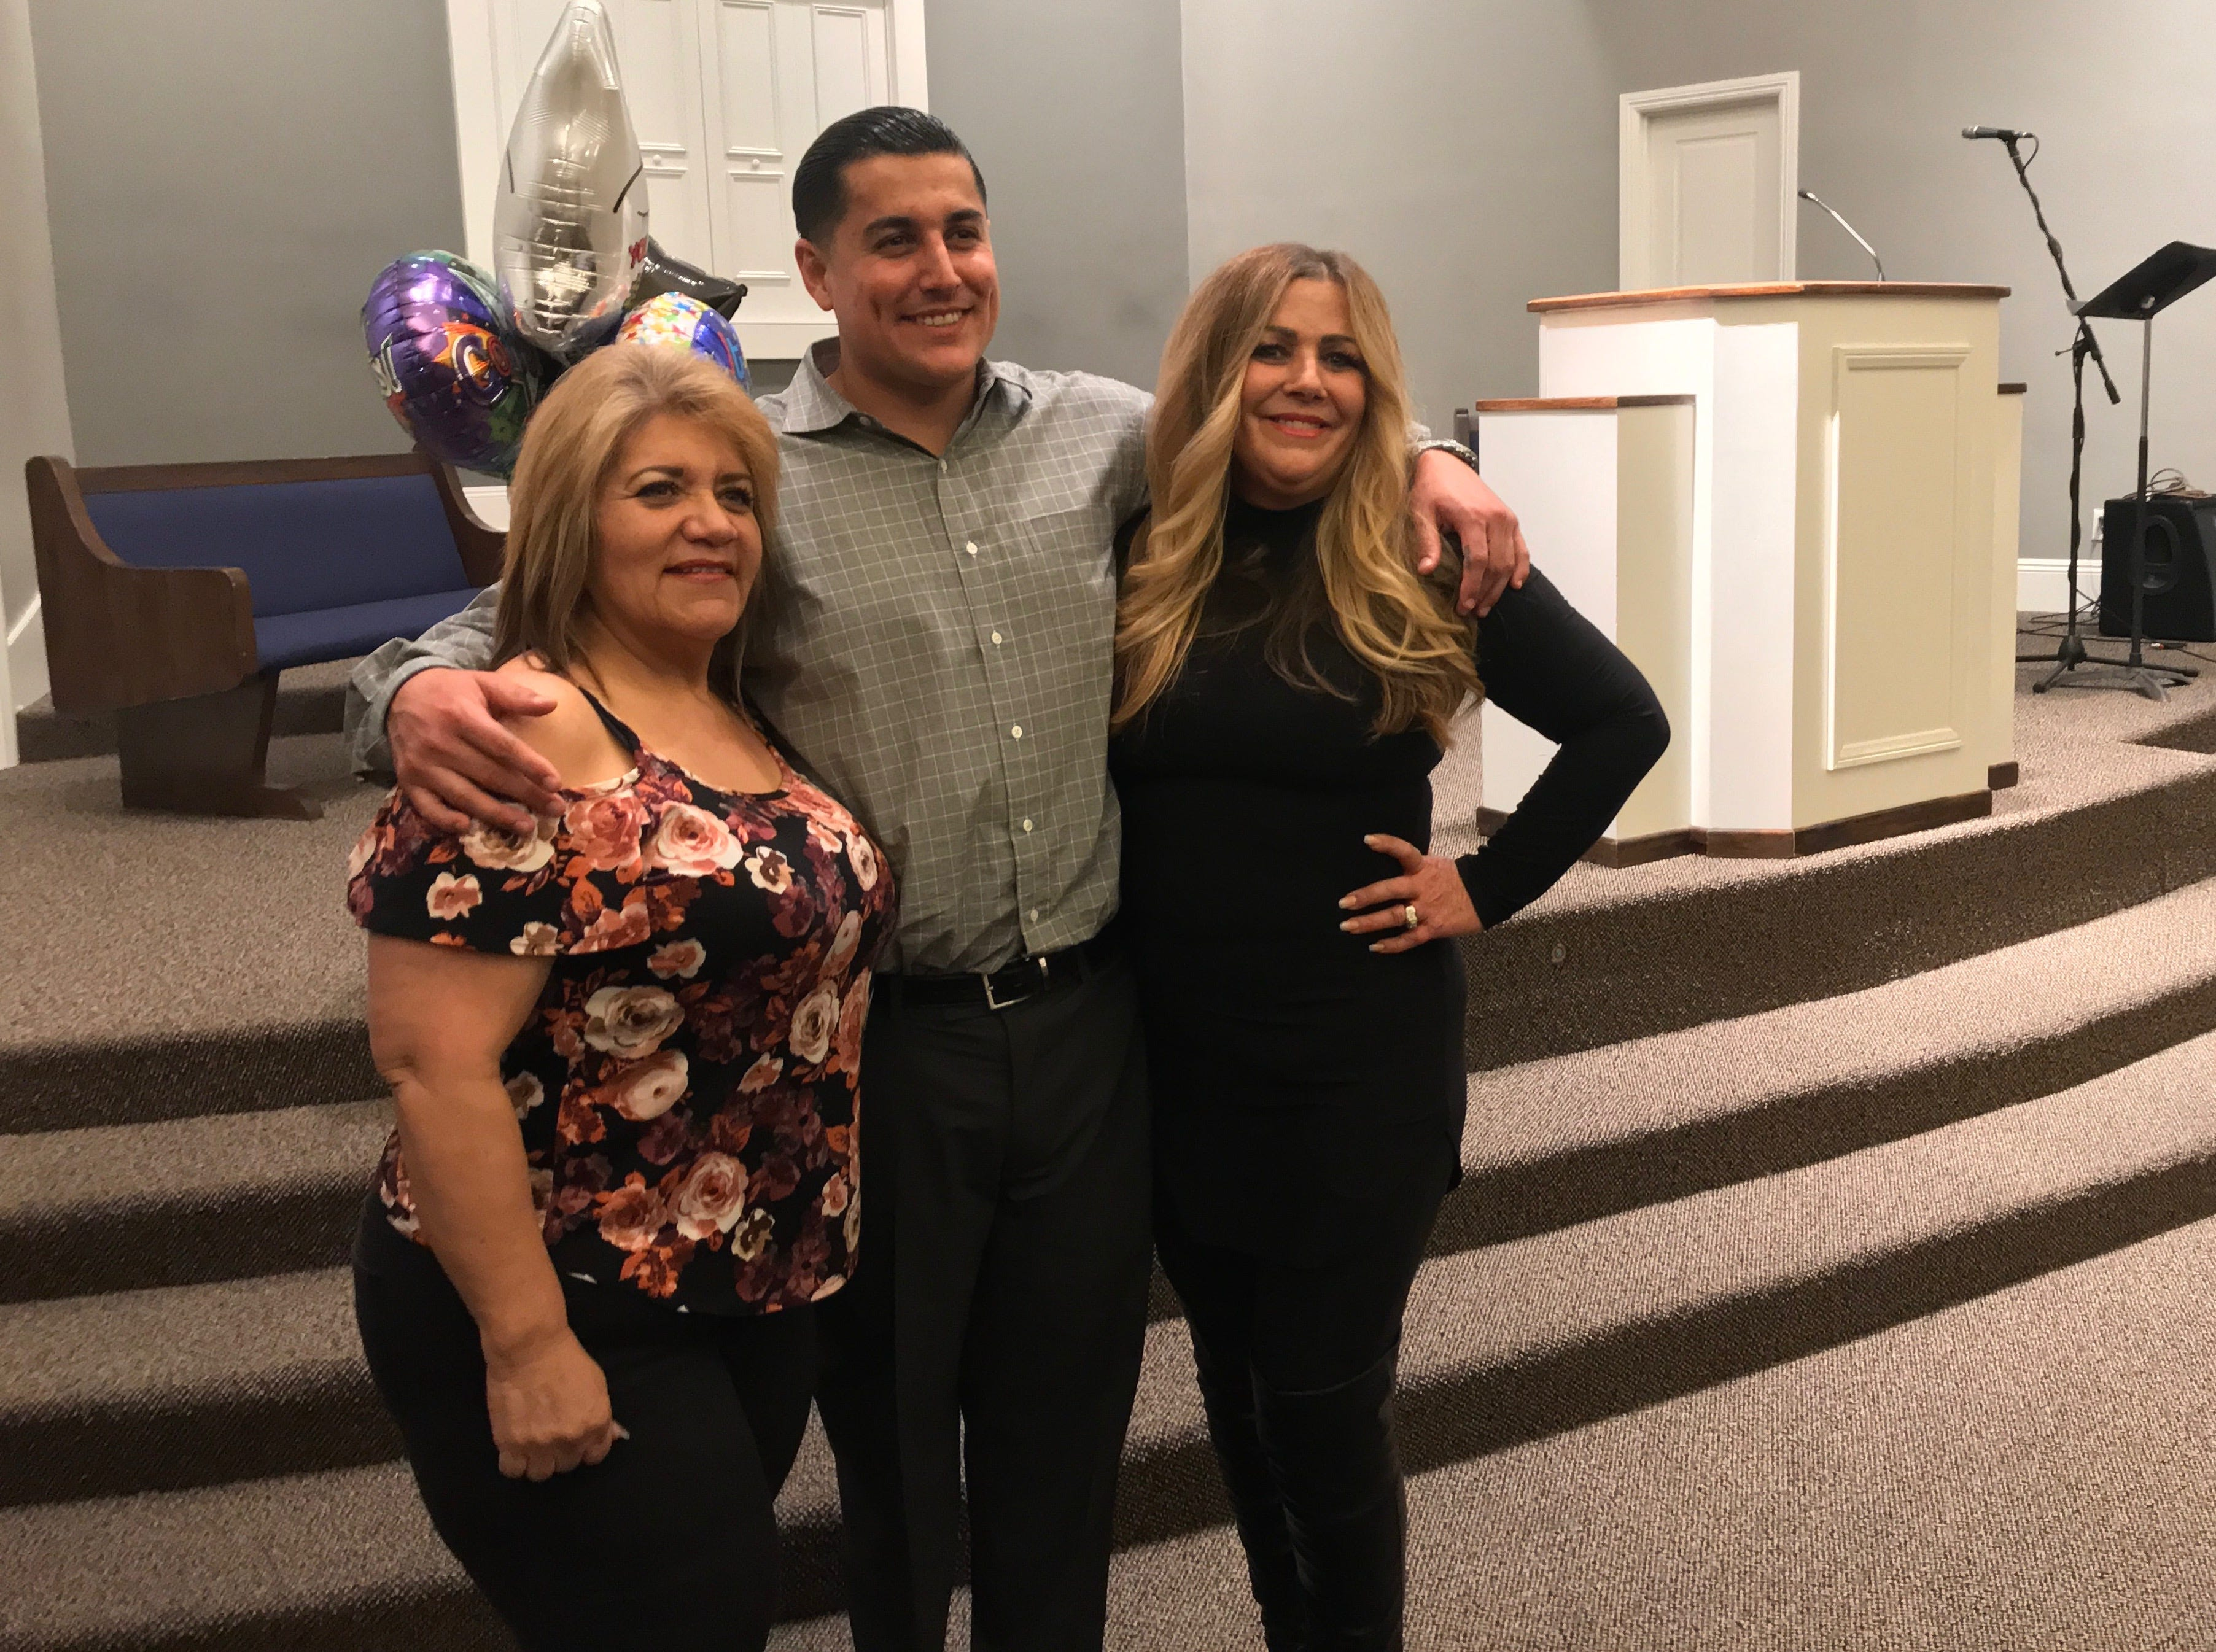 Ventura County Rescue Mission graduate JR Gutierrez poses with his godmother, Darlene Figueroa Murillo, left, and mom, Deborah Balkcom, following his graduation ceremony.